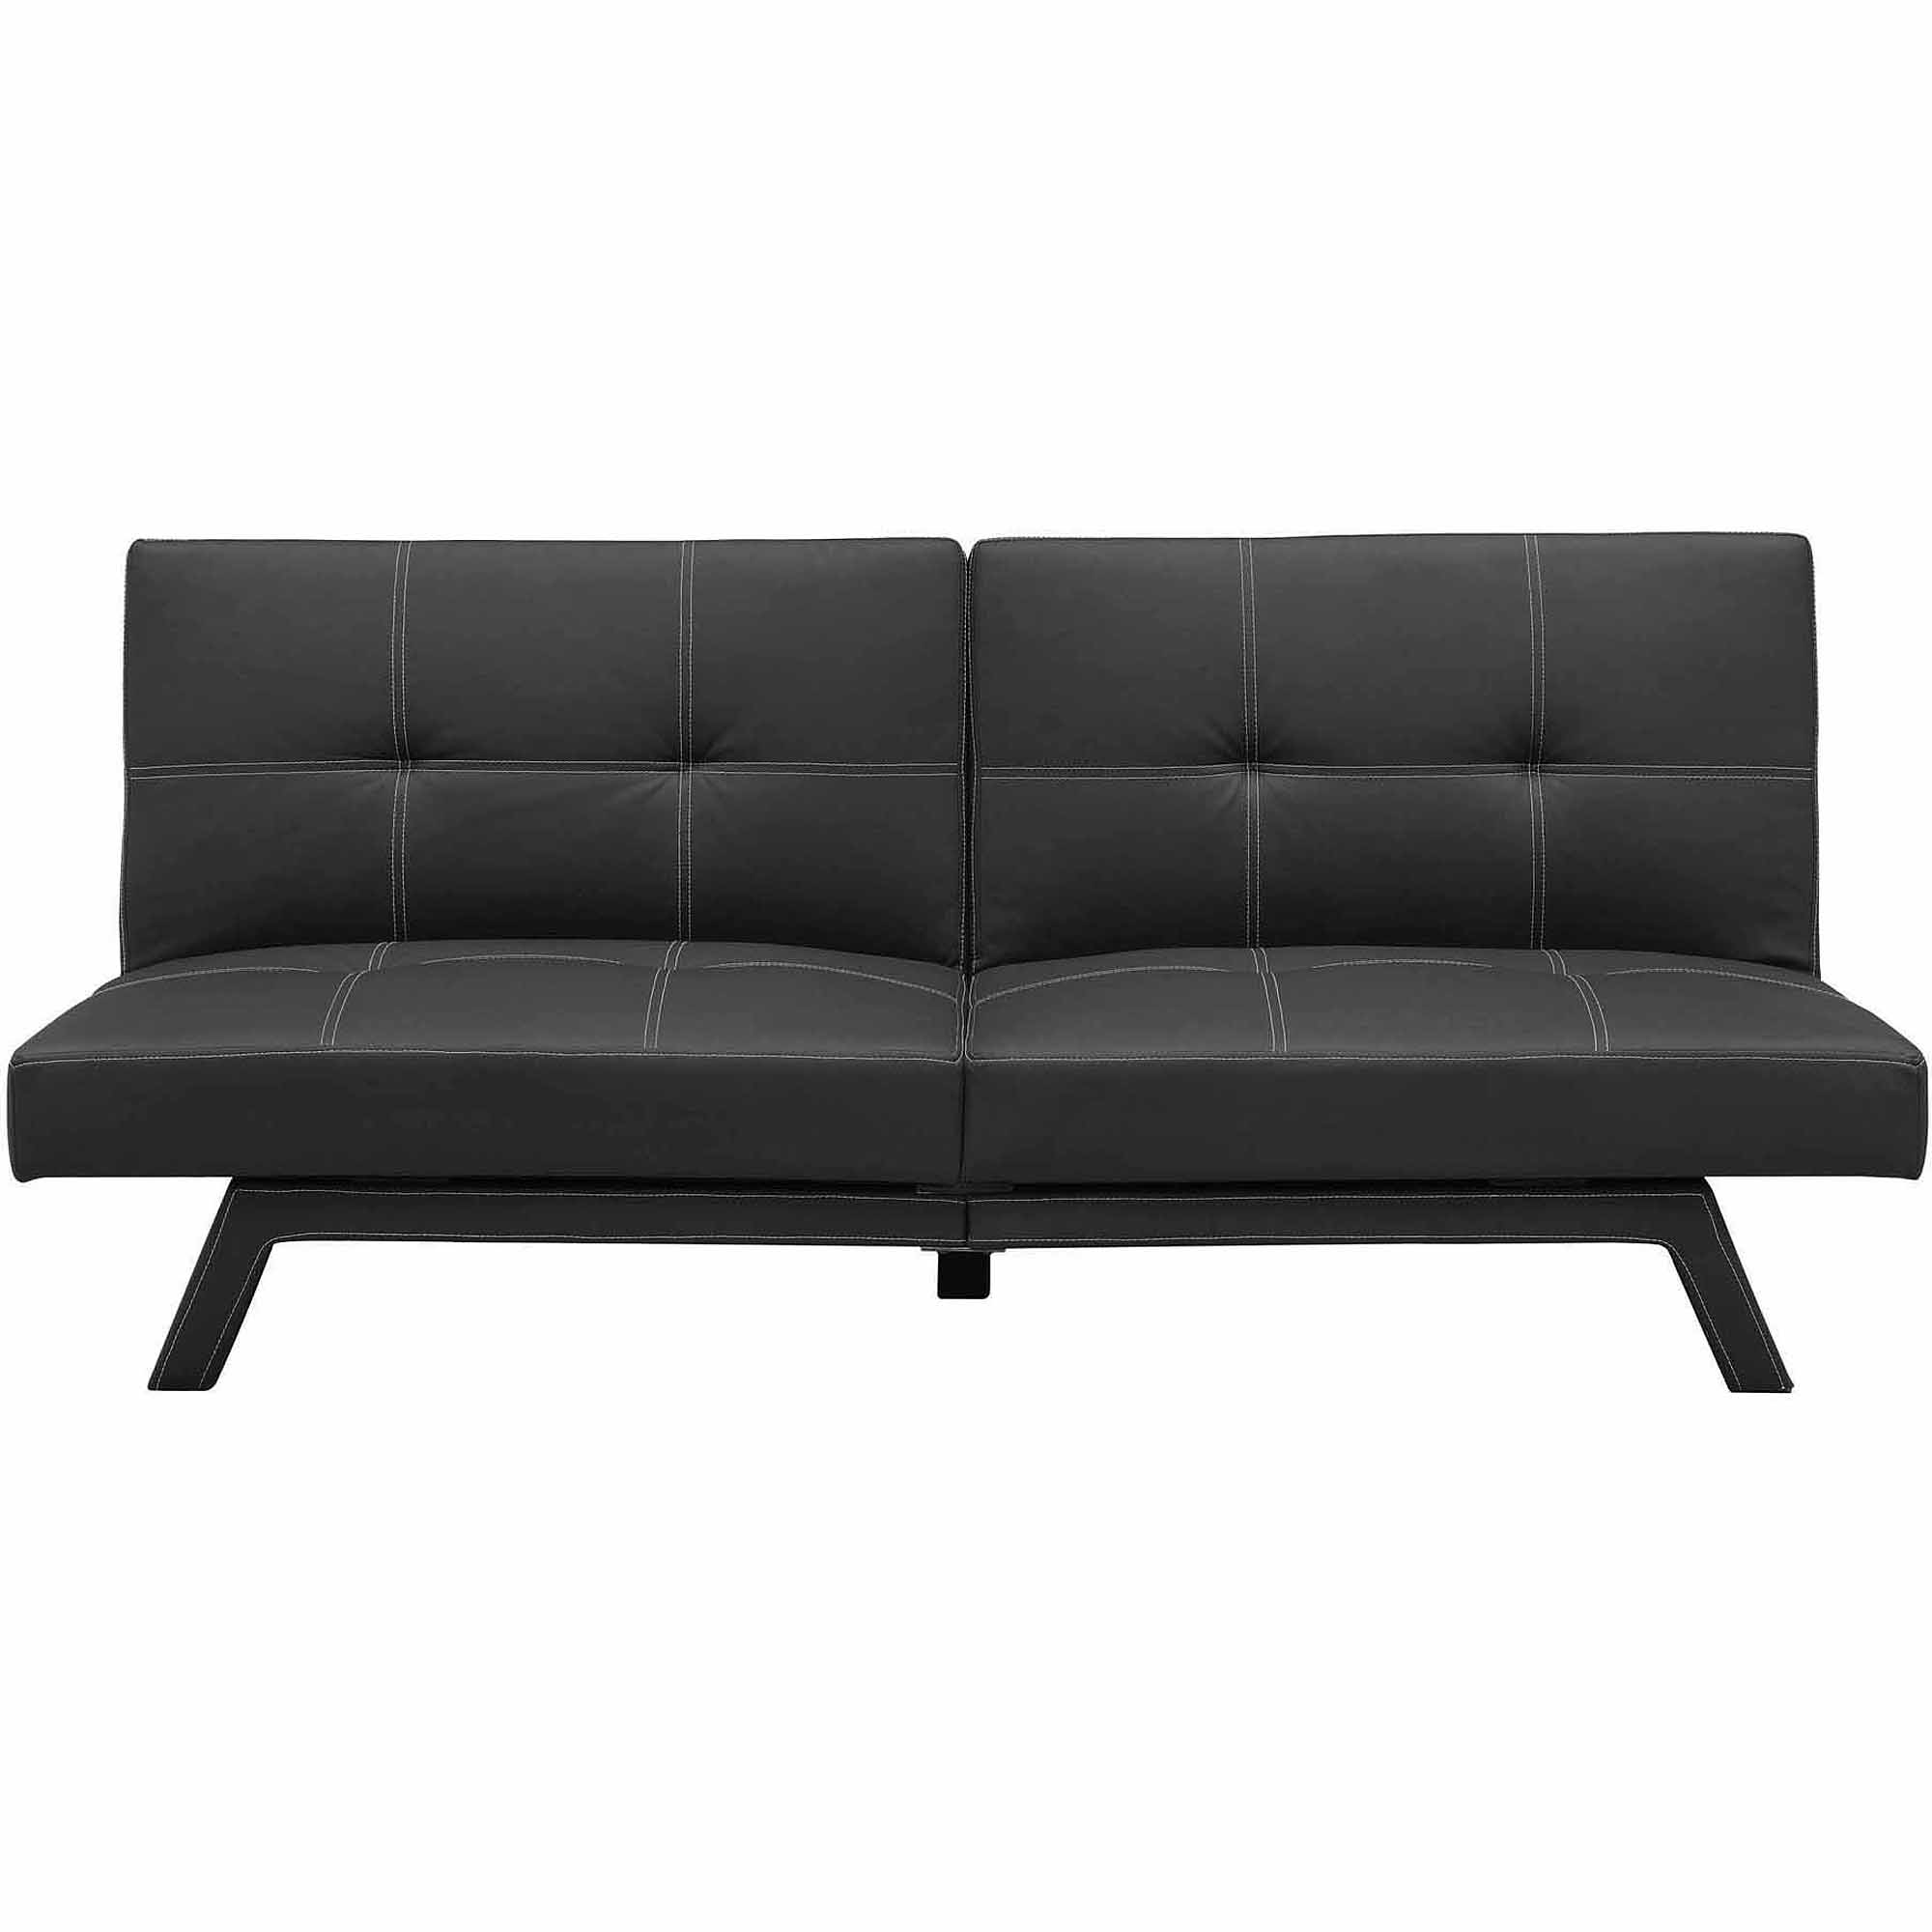 Black Jet Sofa Image Rental Furniture Inhabitr Main Image.png